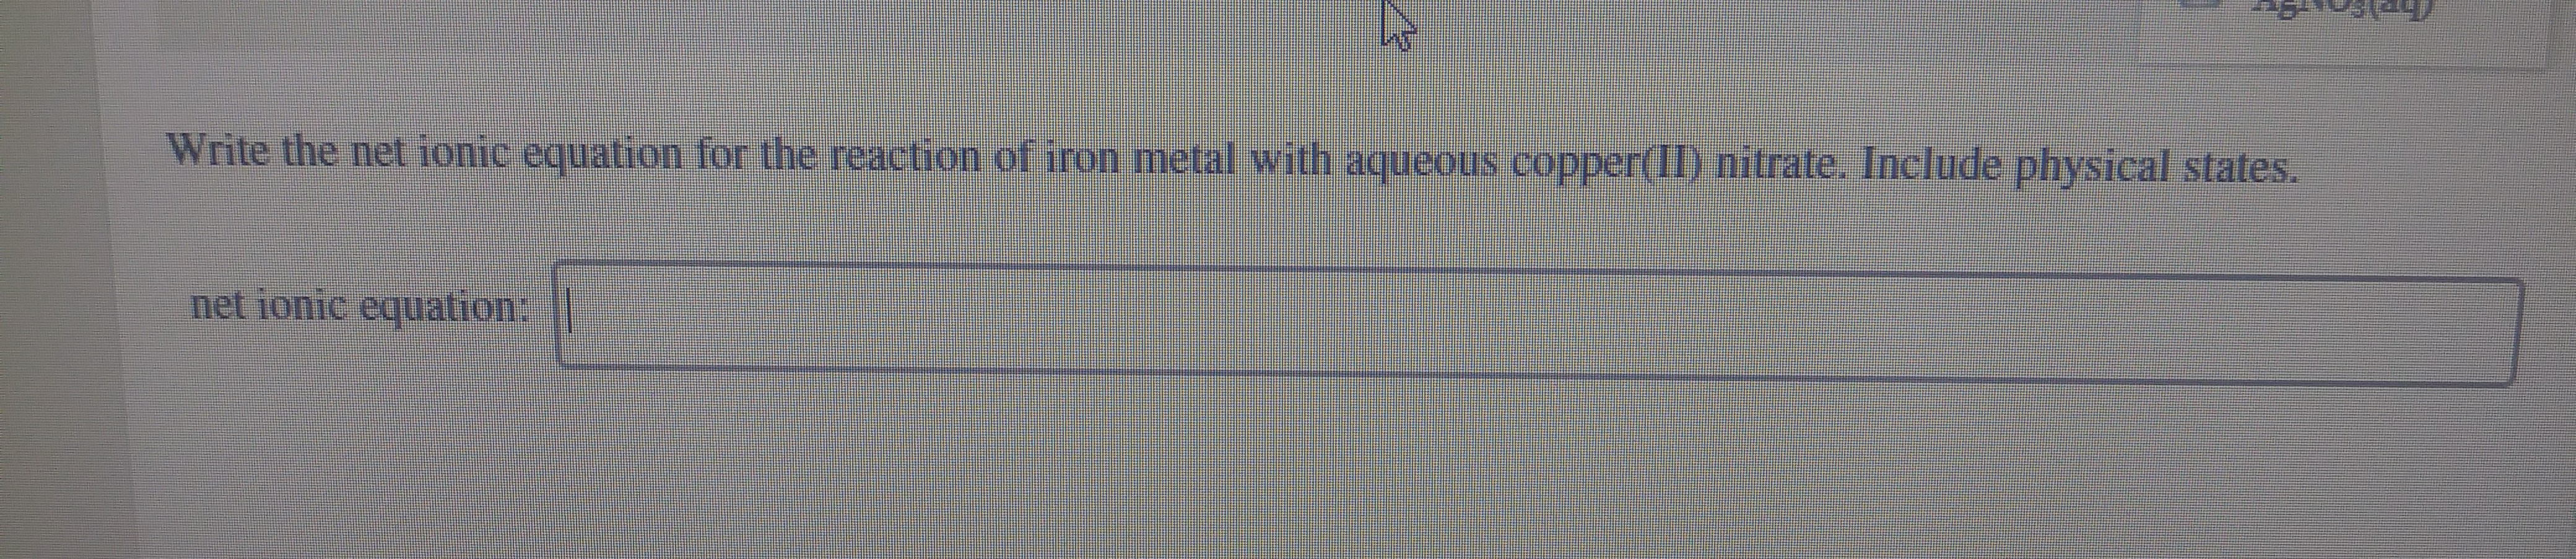 Write the net ionic equation for the reaction of iron metal with aqueous copper(II) nitrate. Include physical states. net ionic equation: ||